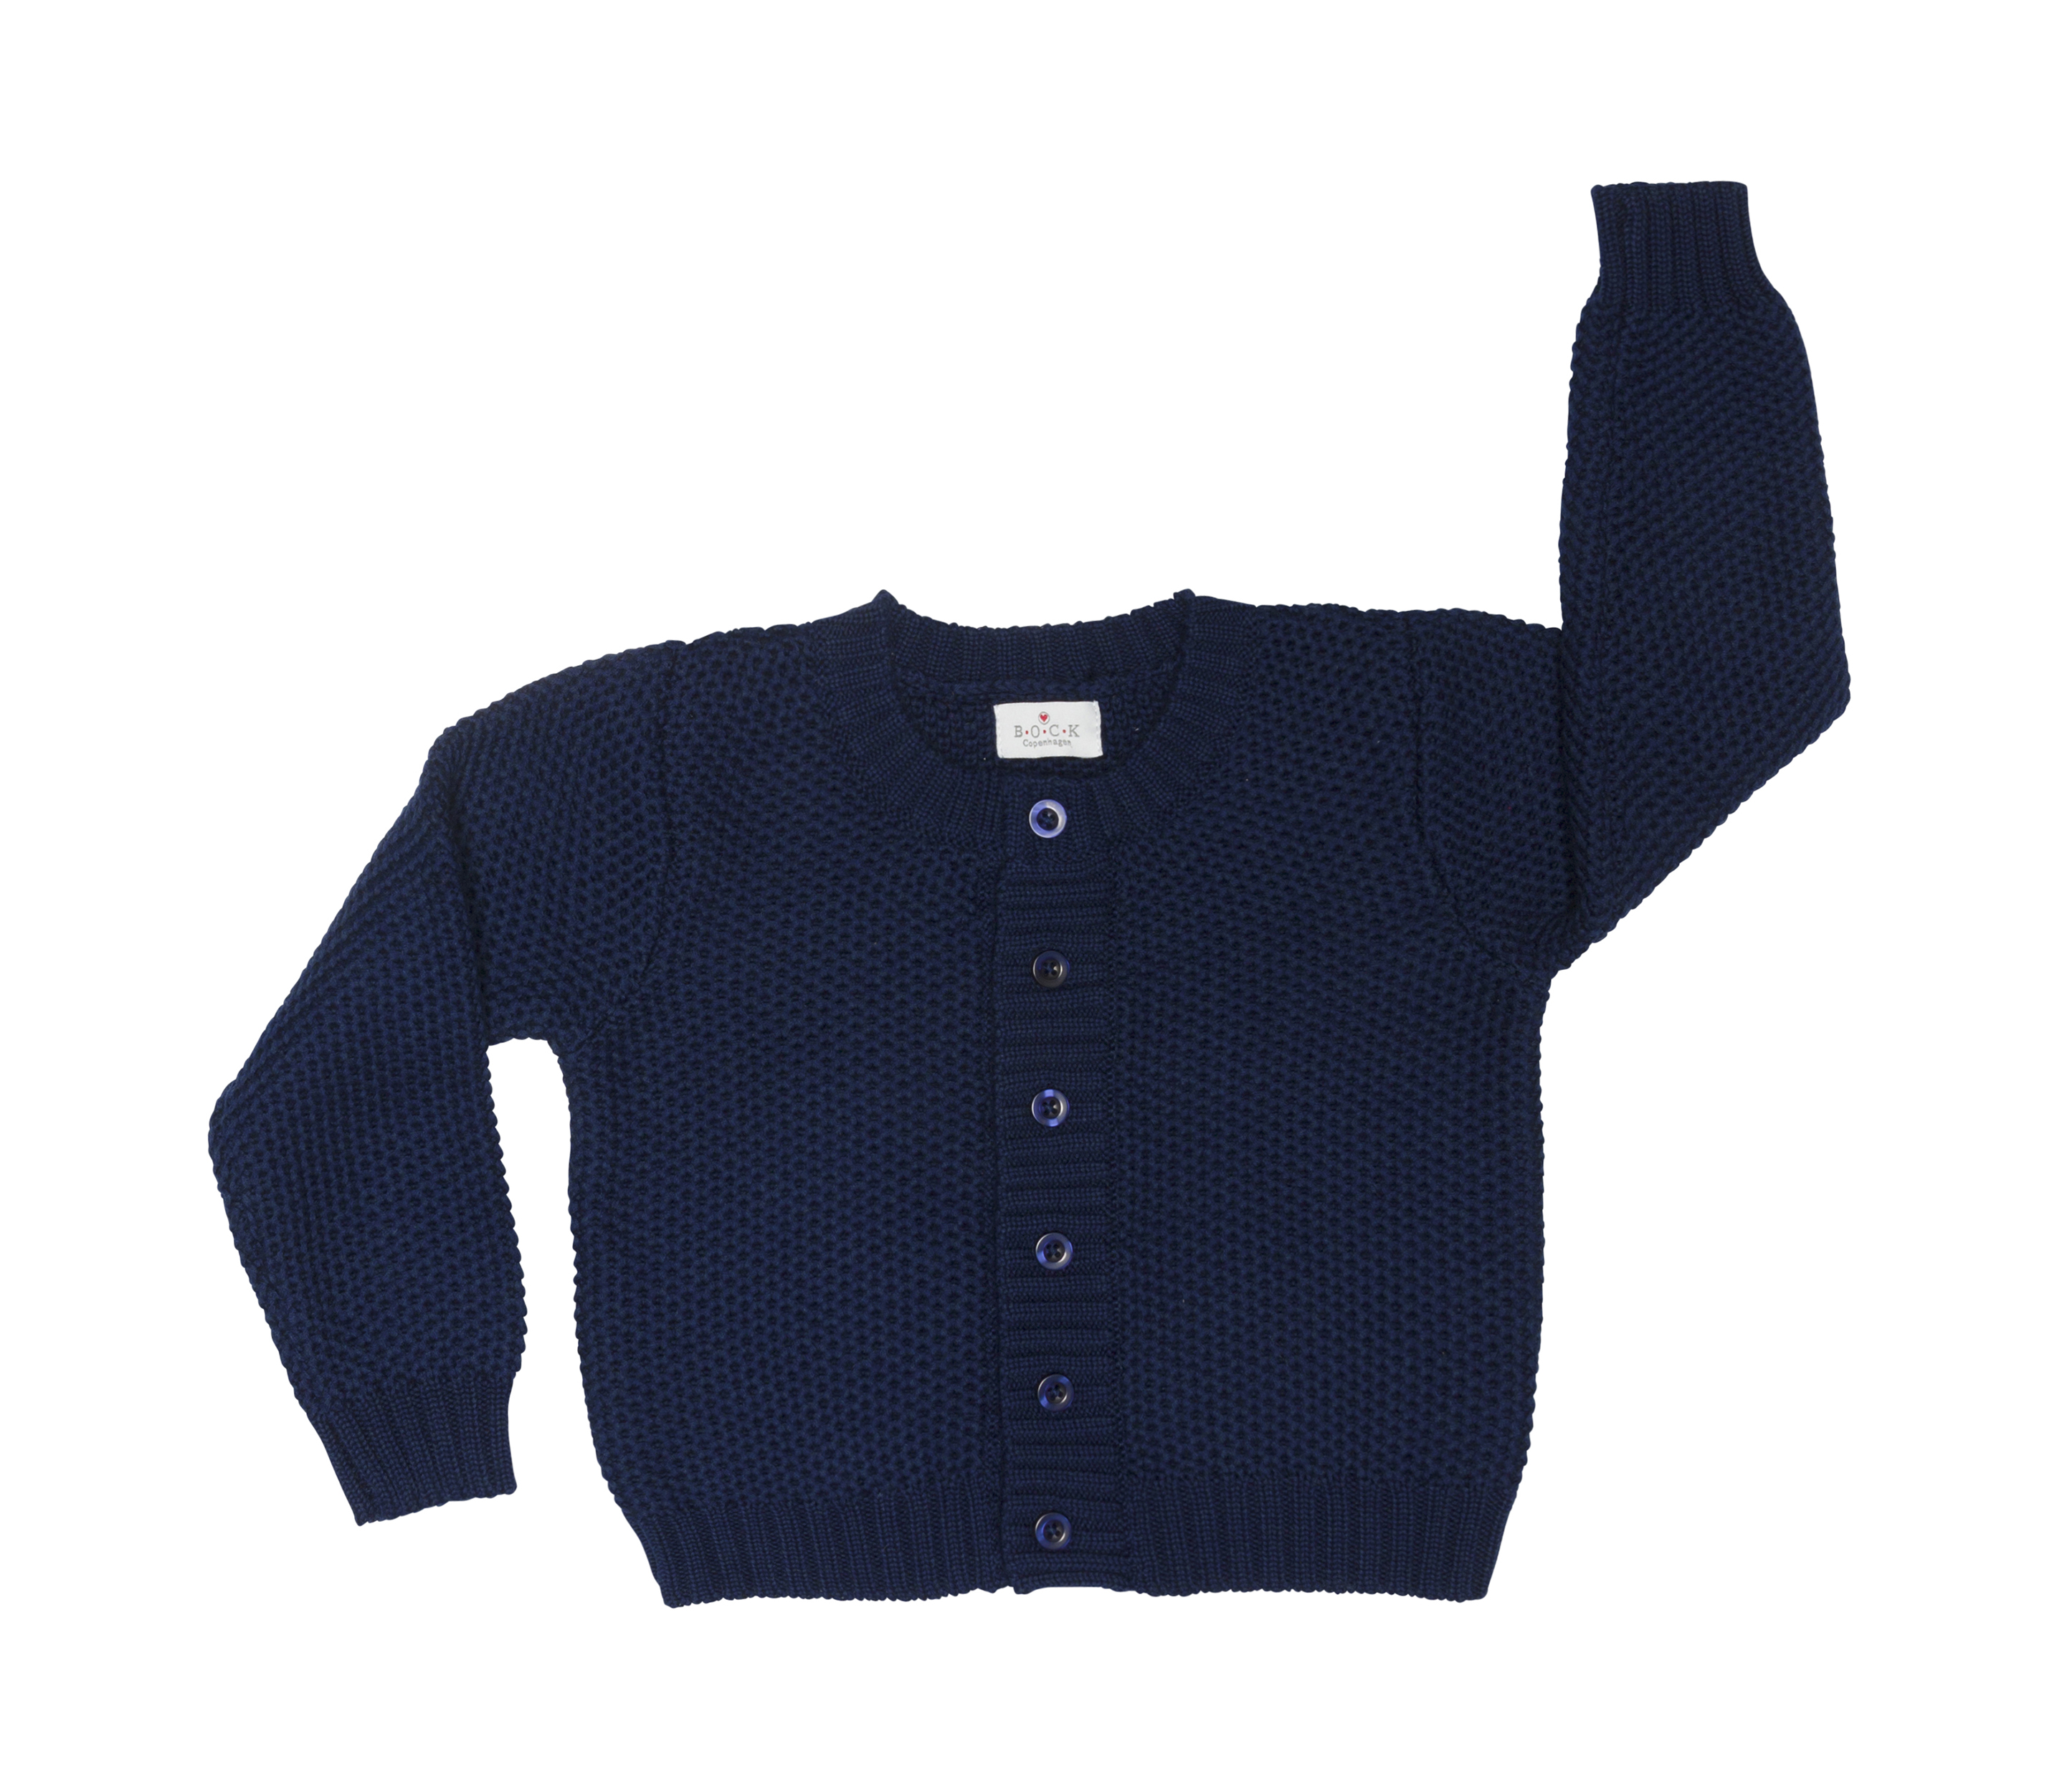 267a8bca48d5 Sample - baby cardigan - organic cotton - BOCKCph